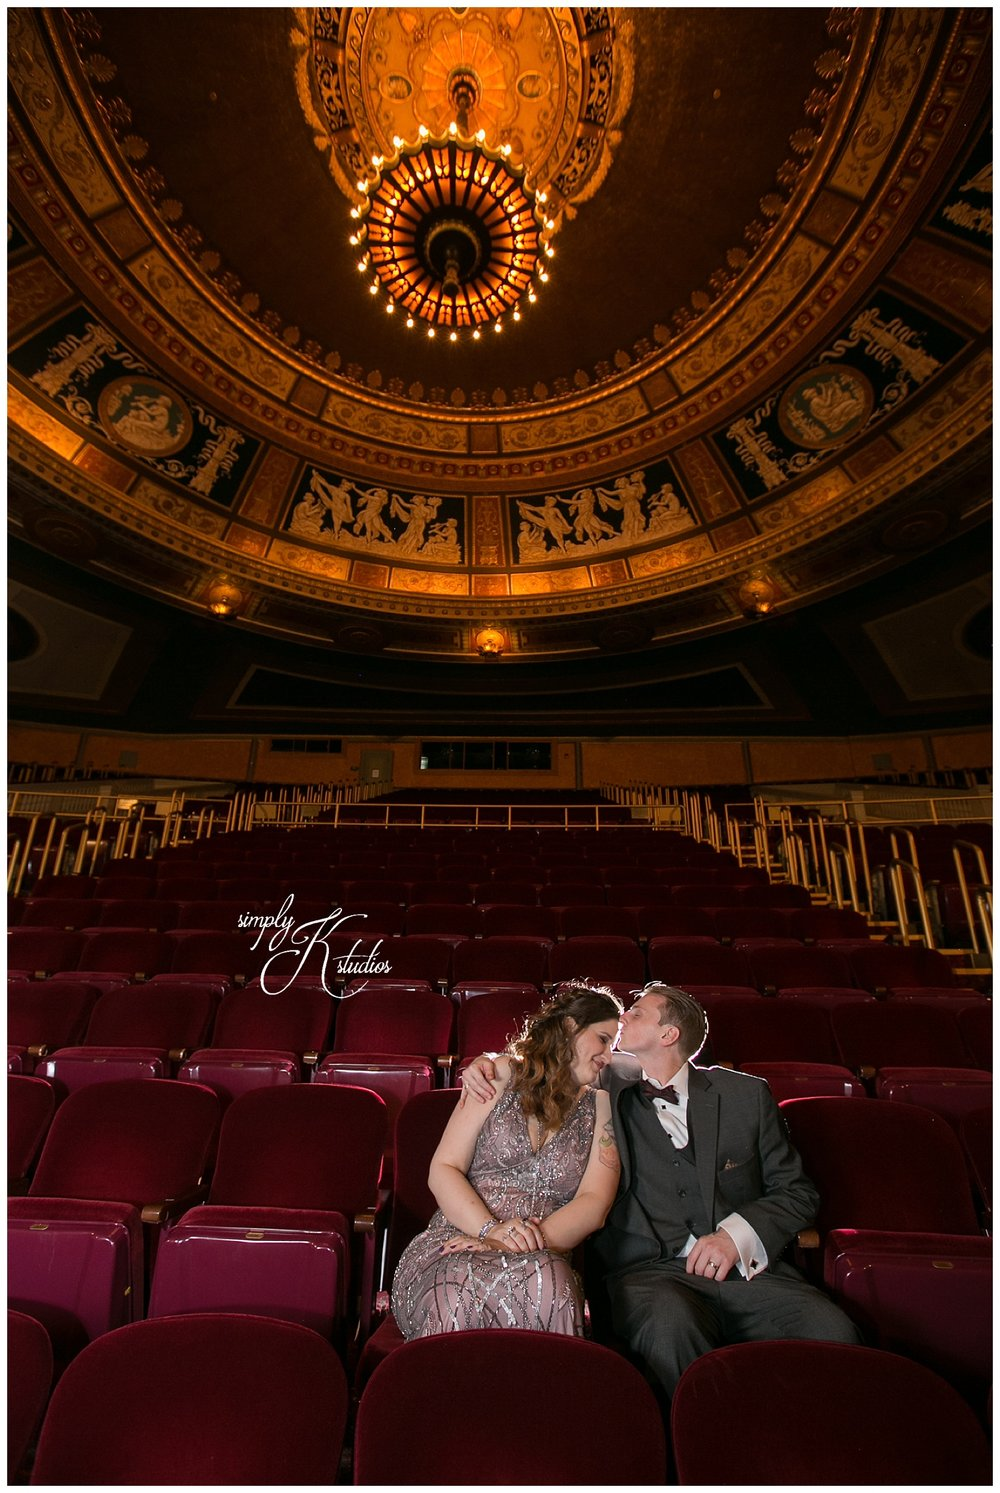 Simply K Studios Wedding Photography.jpg